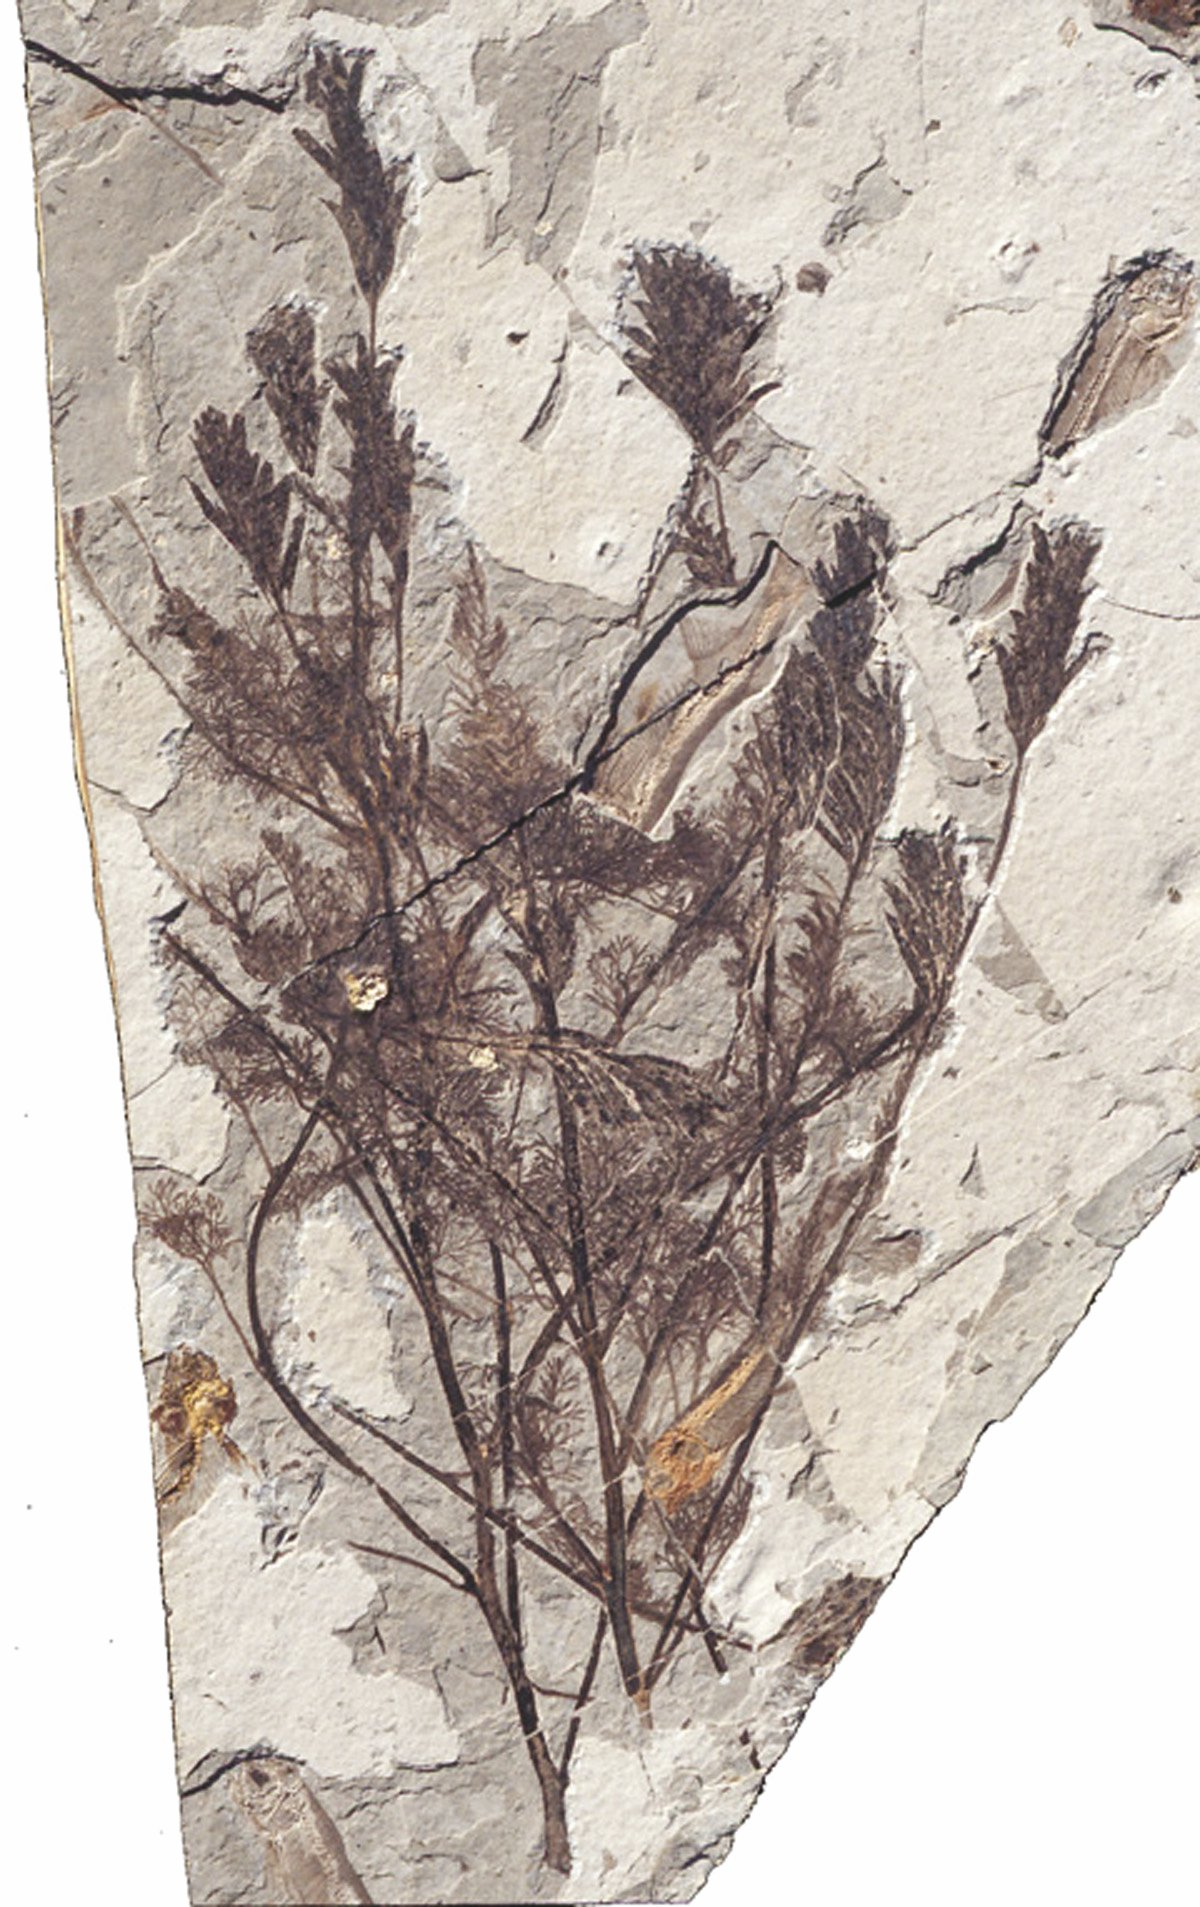 Archaefructus liaoningensis fossil